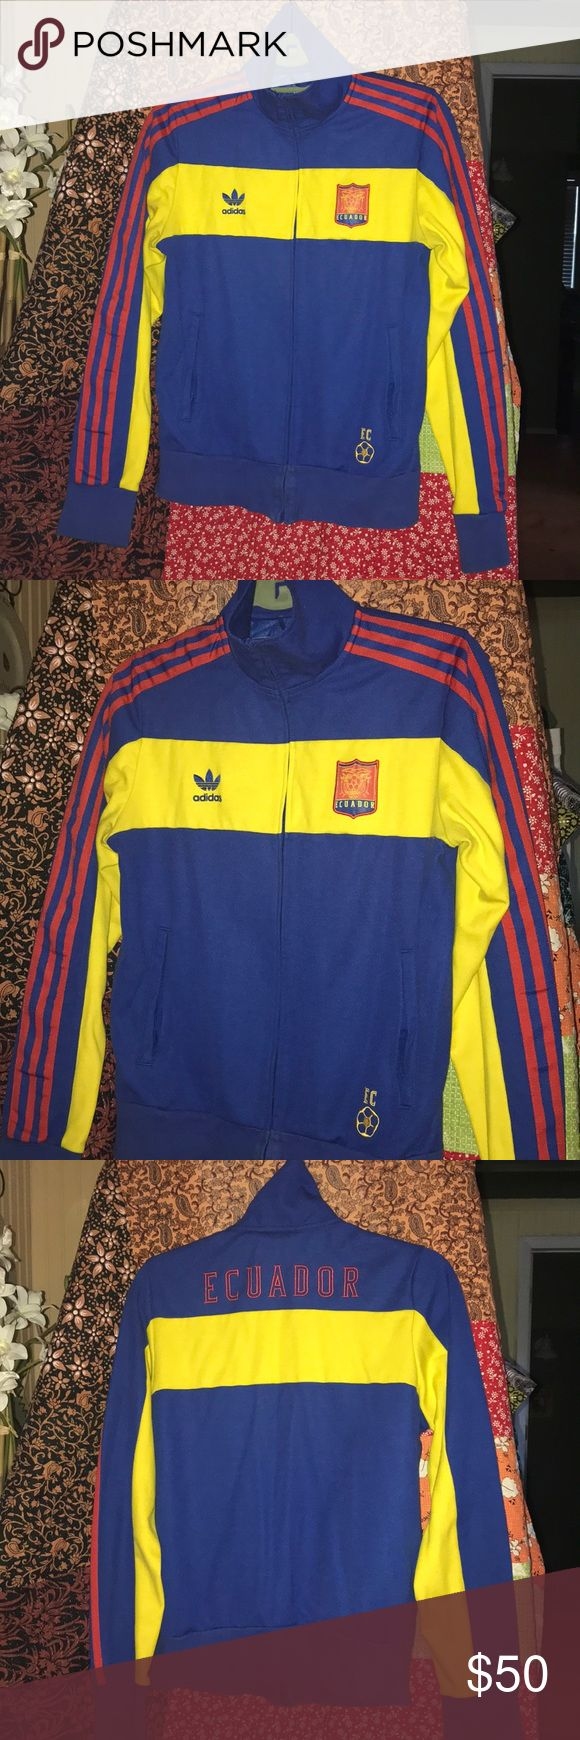 Adidas Ecuador Futbol Soccer Track Jacket Men's L Authentic Adidas Ecuador Track Jacket Circa 2006. Mens Large, Euro Size 44. Fitted, as their track jackets tend to be. No flaws to be seen except tiny bit of usual fading at zipper as seen in photo. adidas Jackets & Coats Performance Jackets